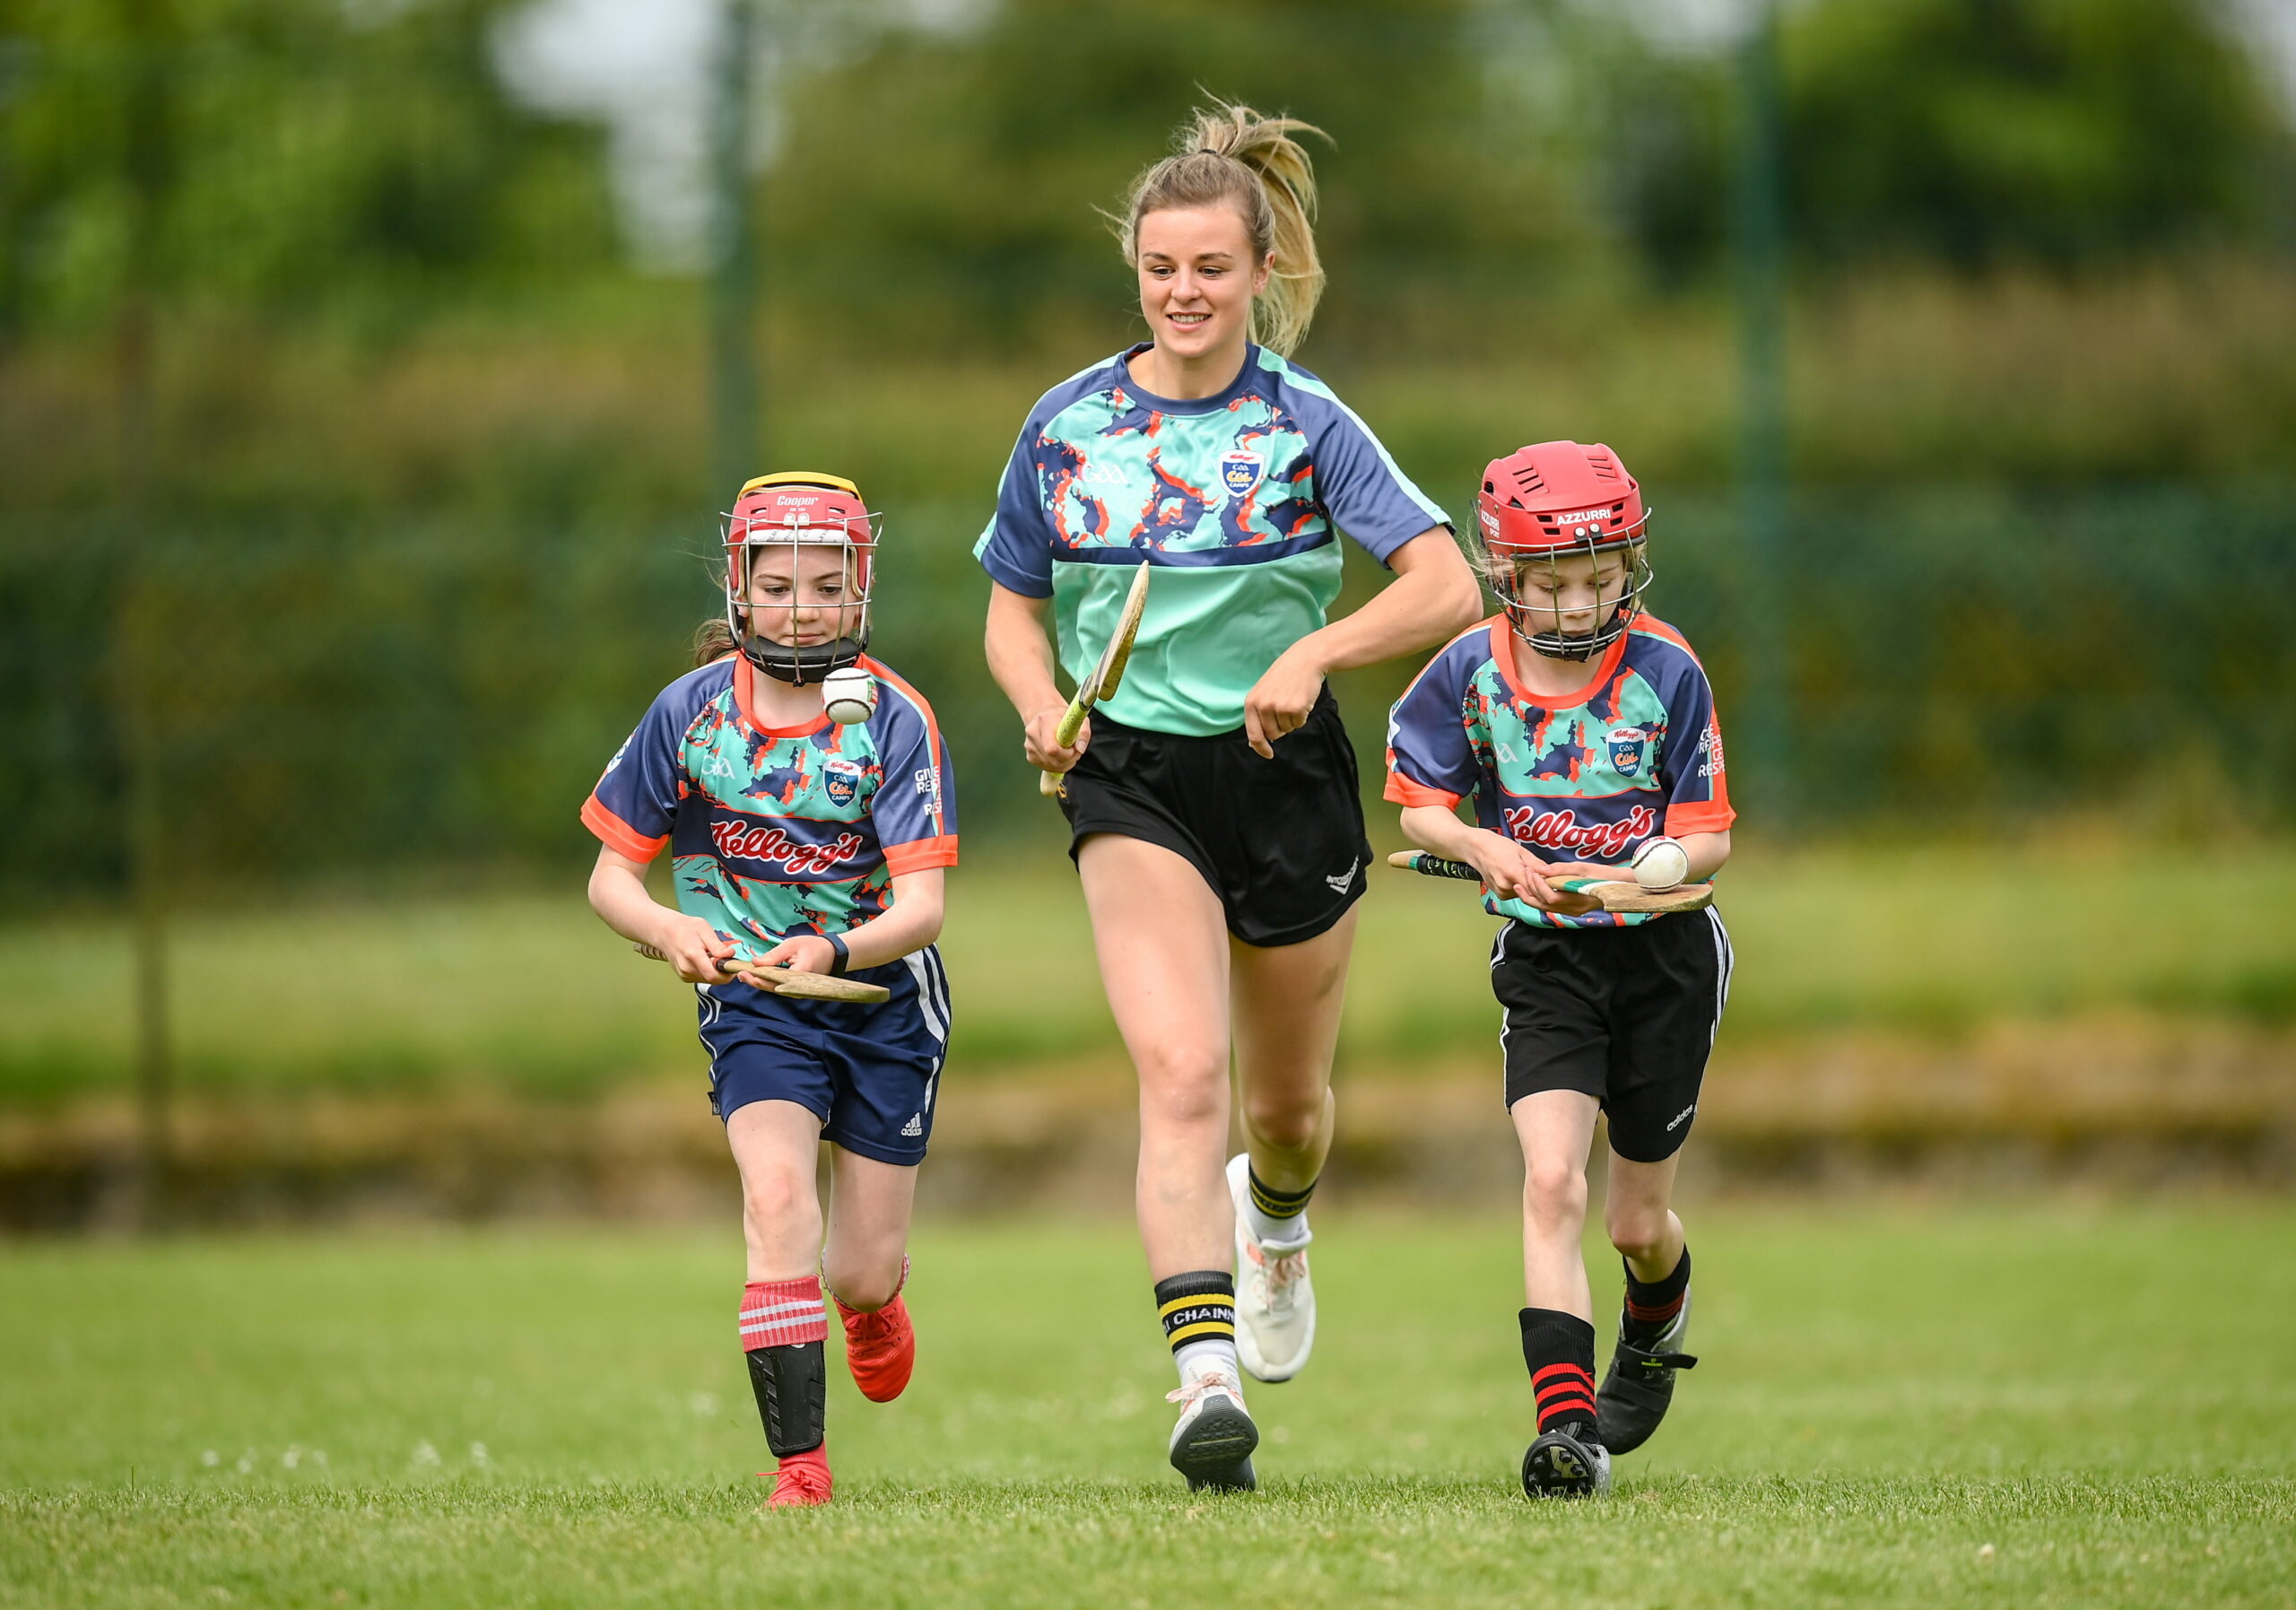 Summer up and running as Kellogg's GAA Cúl Camps underway